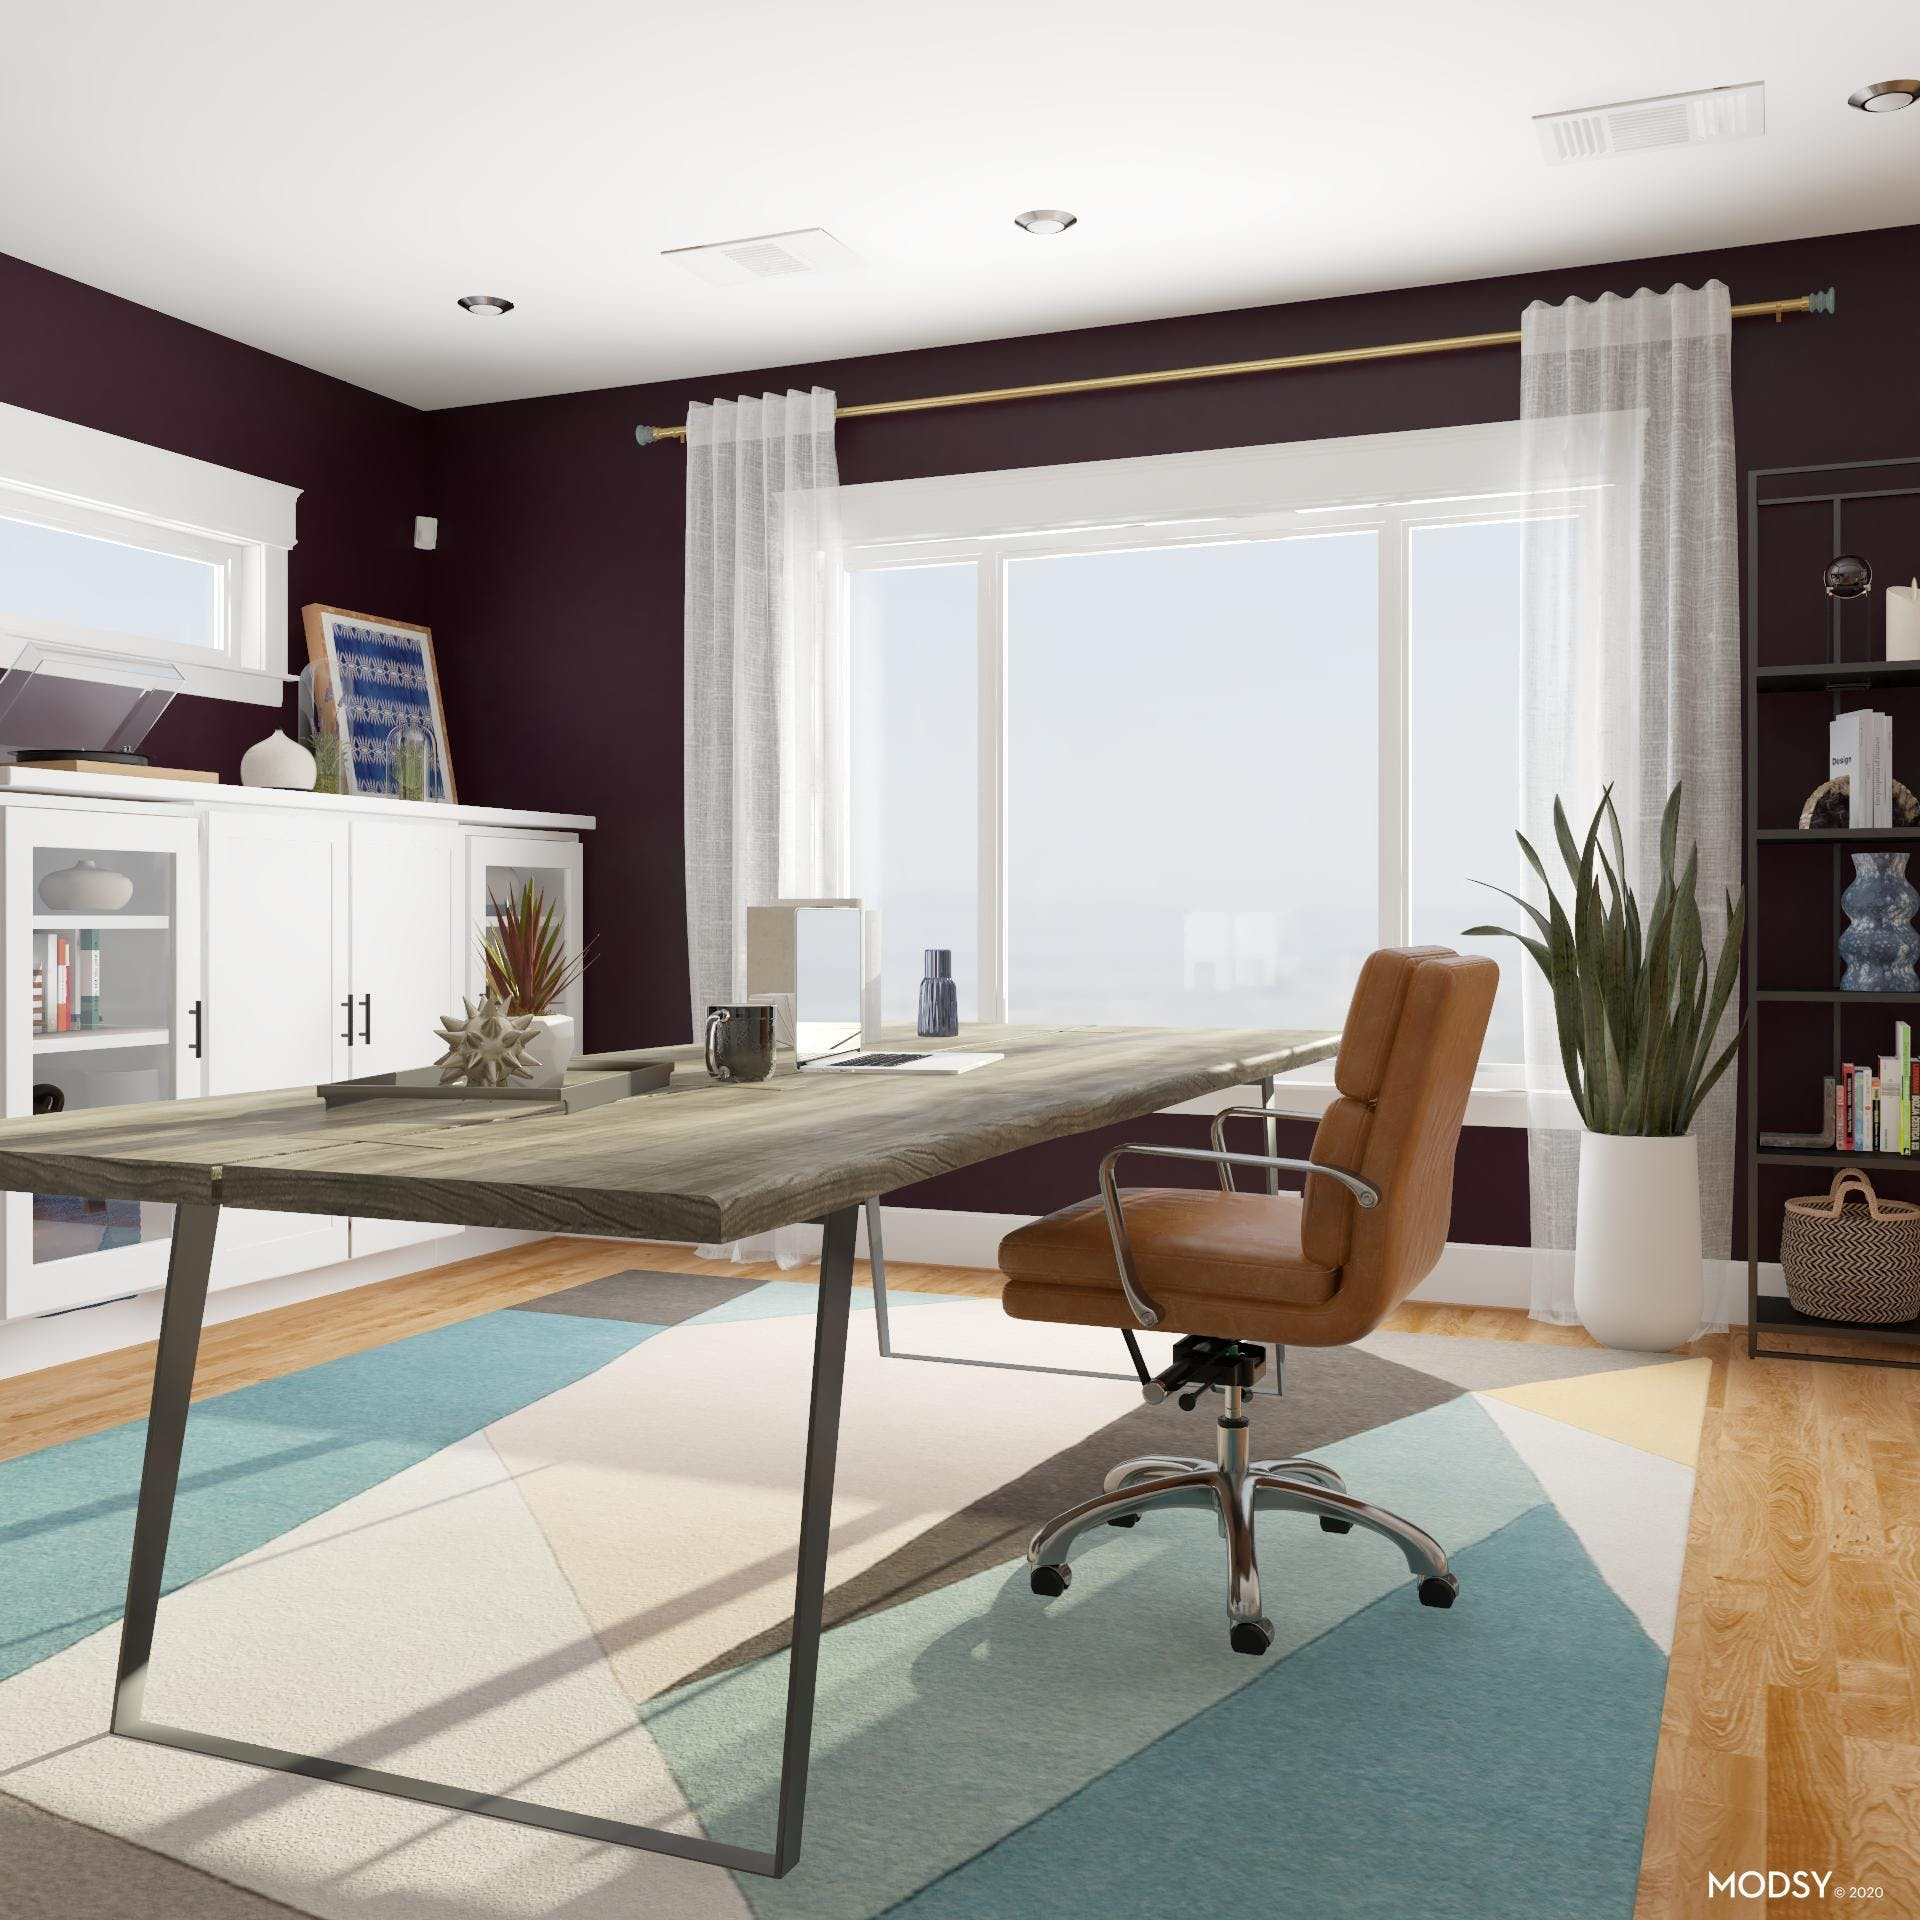 A Colorful Office With Industrial Lines